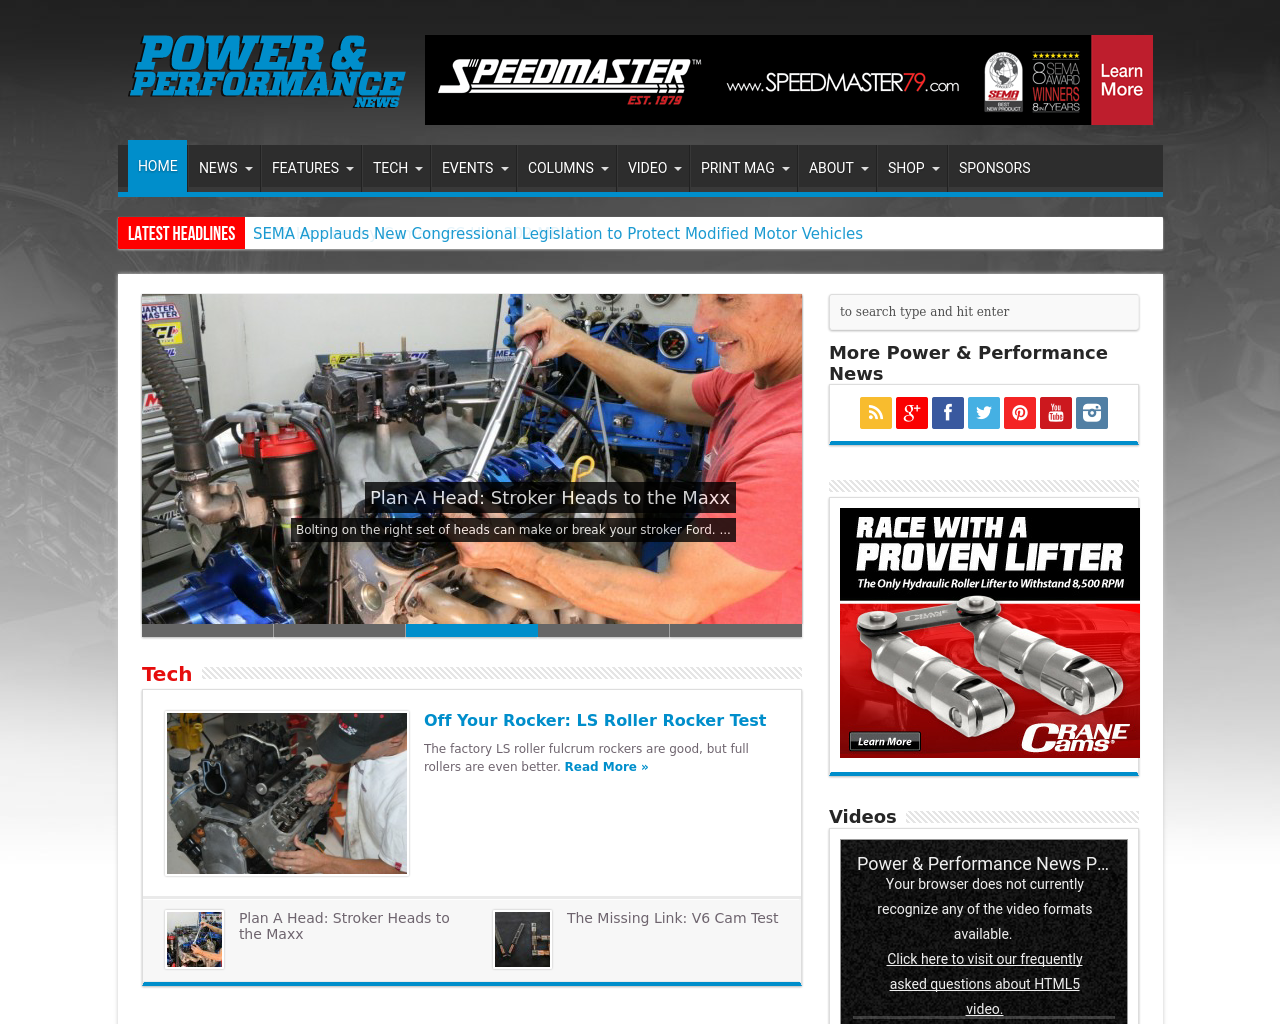 Power-&-Performance-News-Advertising-Reviews-Pricing